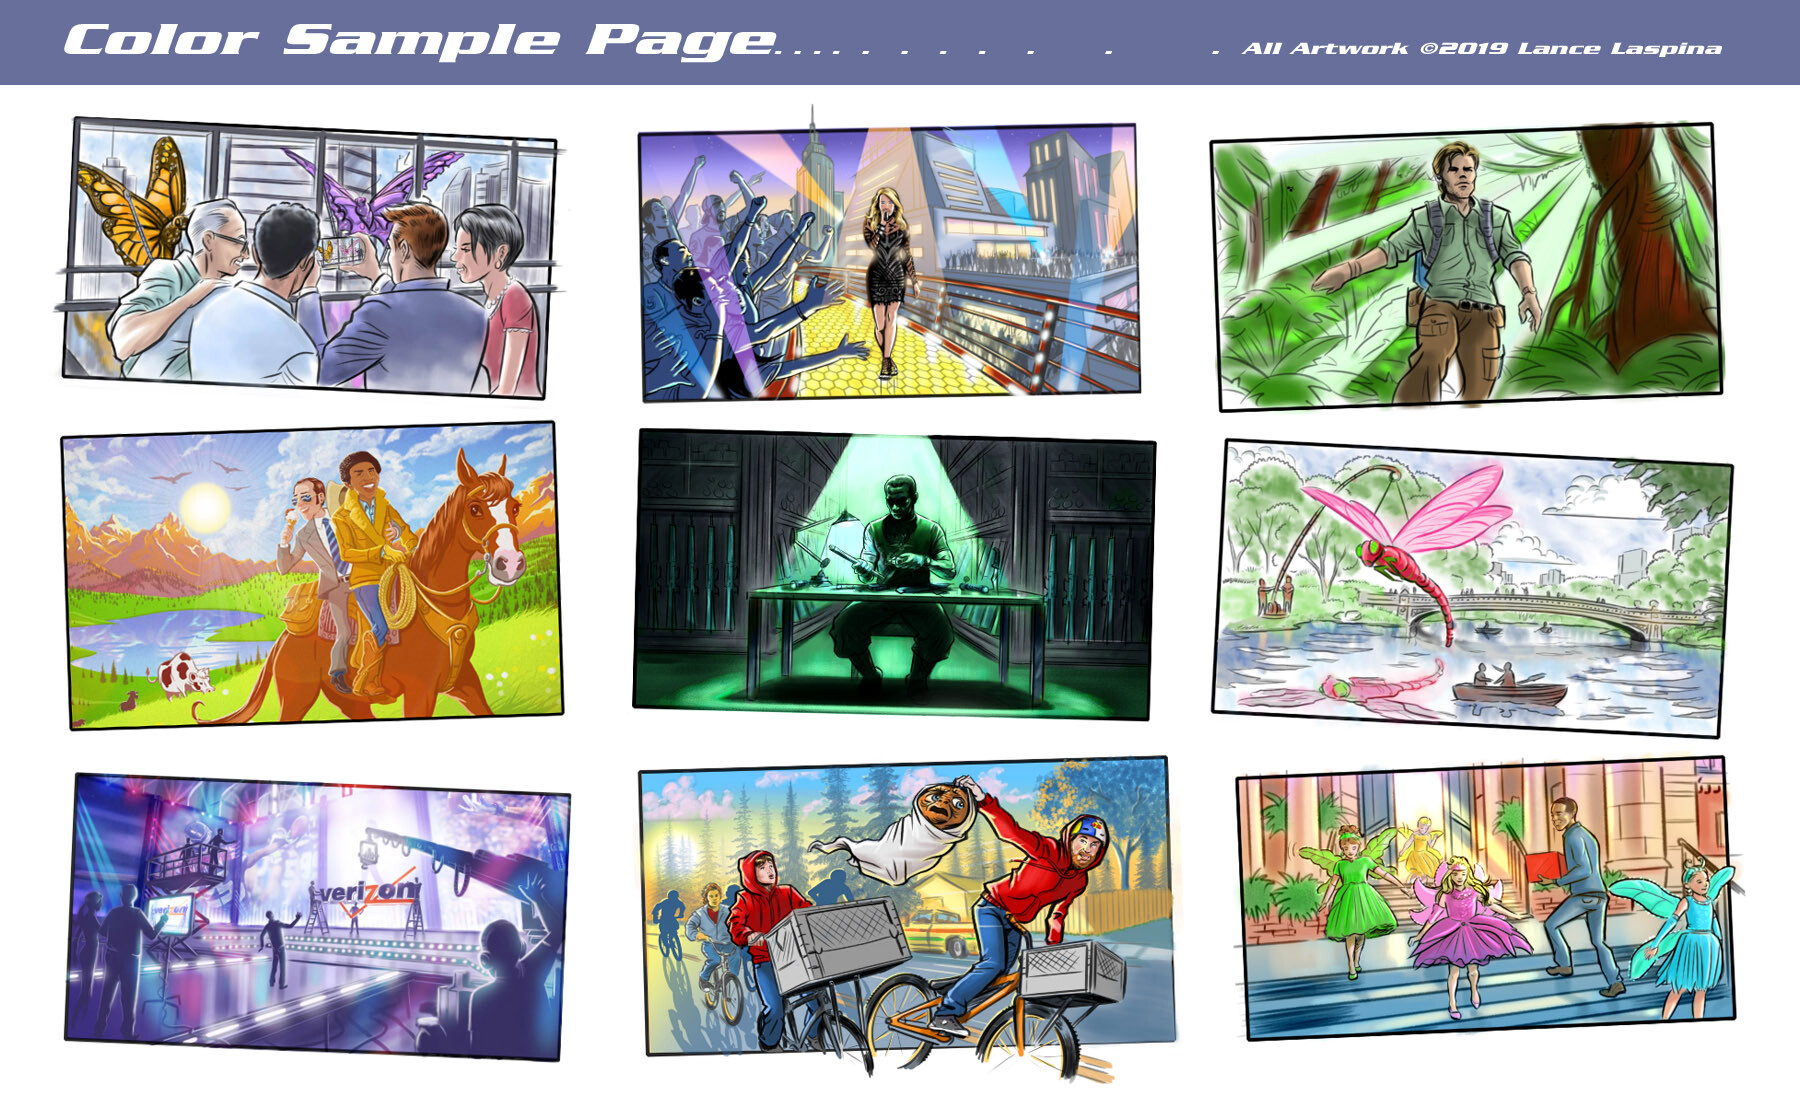 Lance laspina as storyboardsamples 02